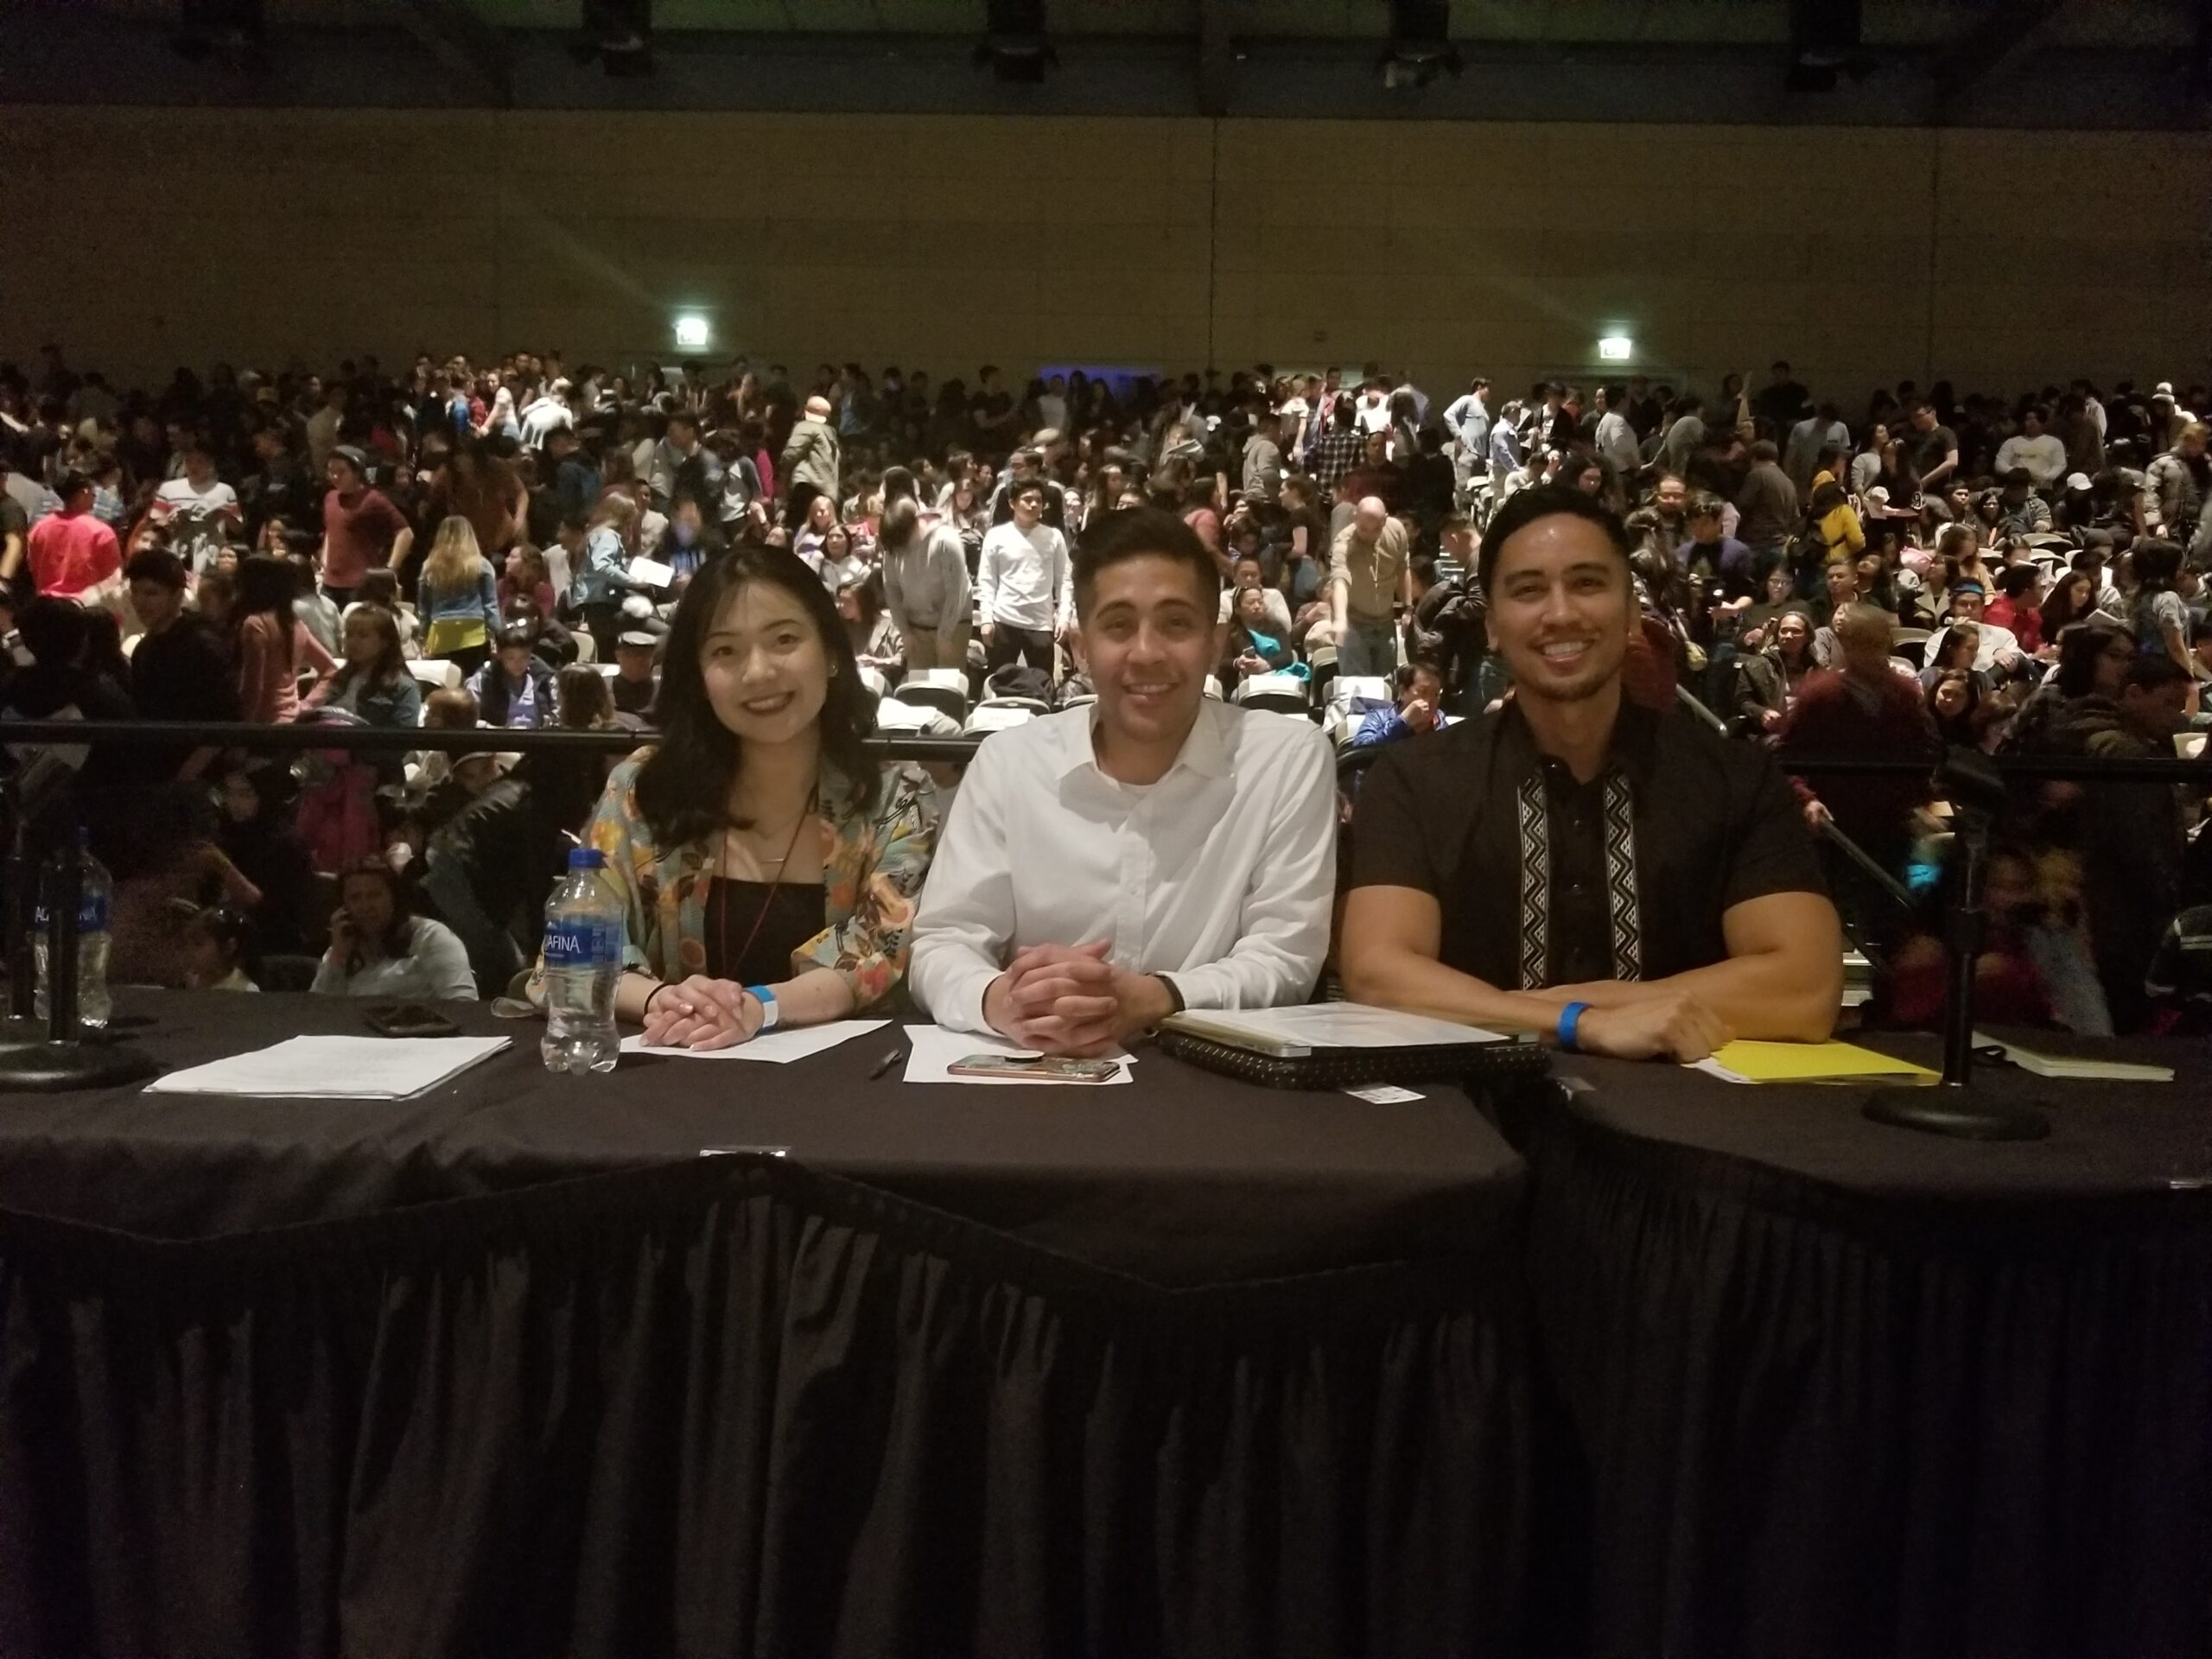 Three Filipino judges, one woman and two men, sit at a table in front of a large seated audience